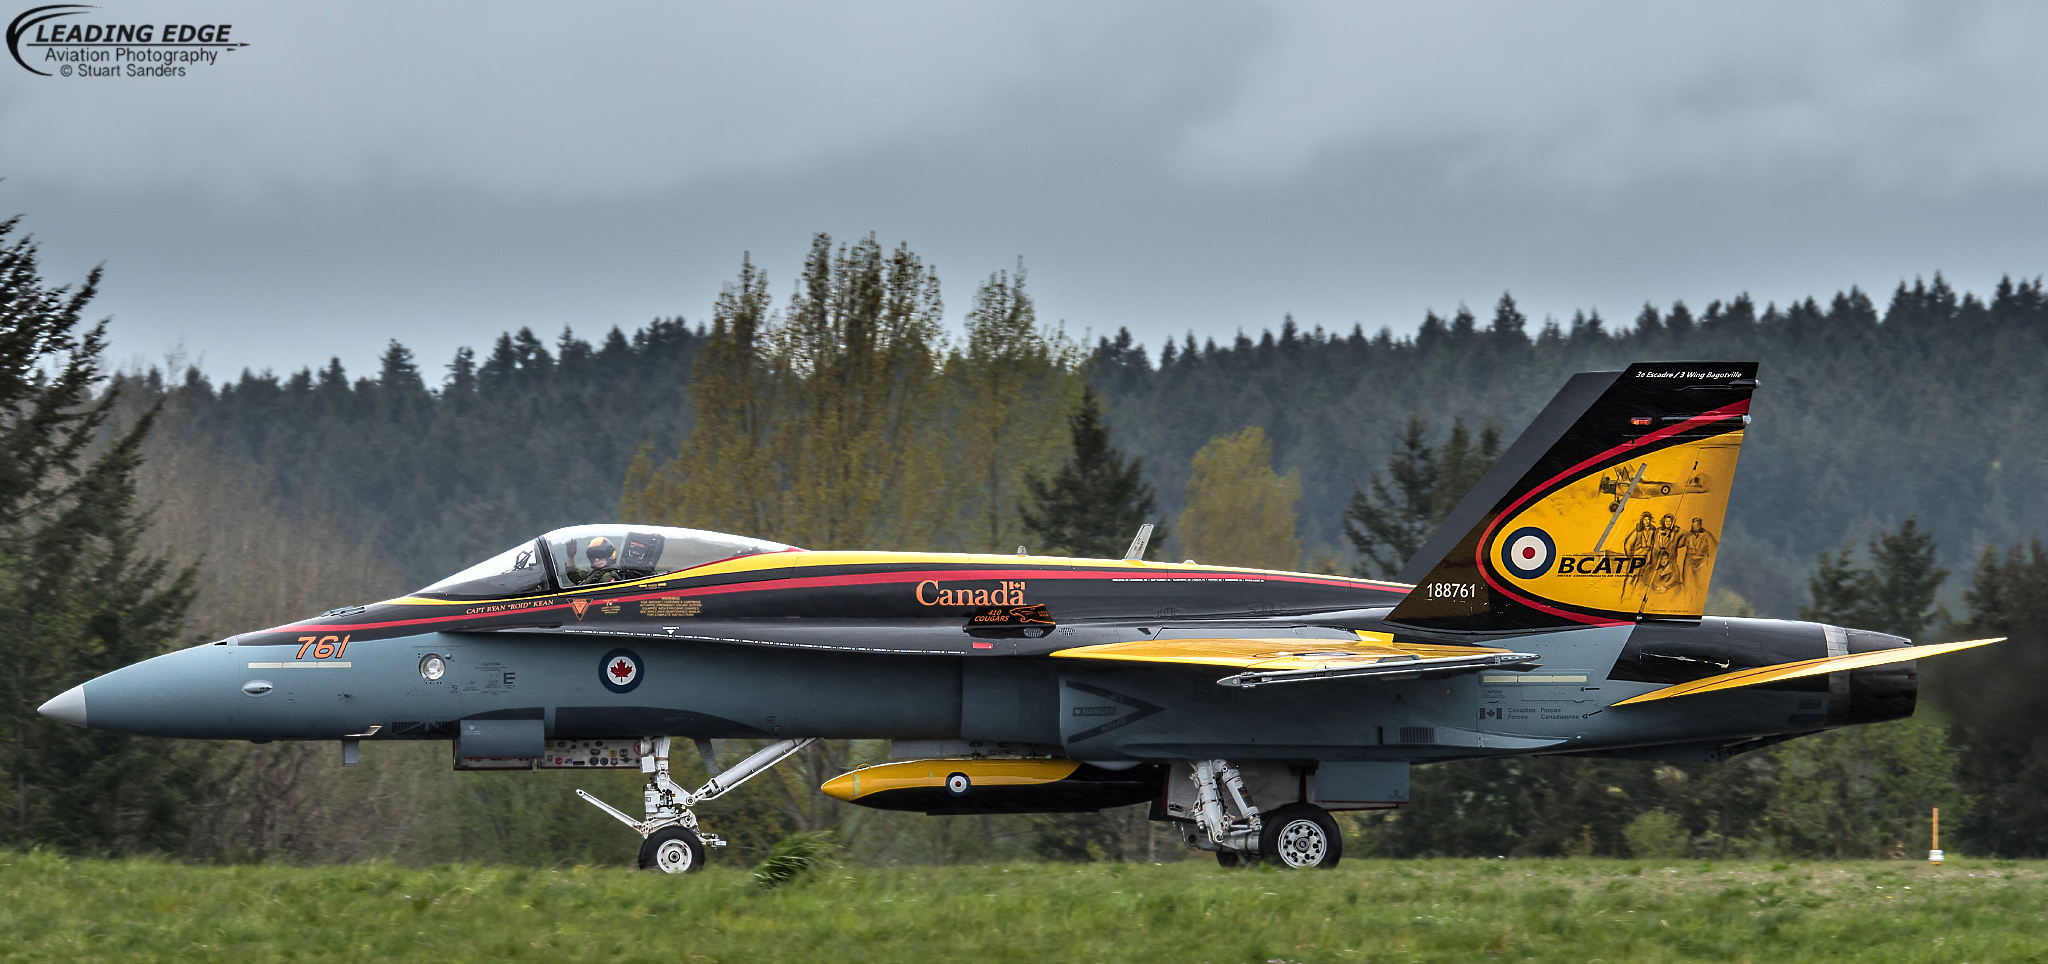 The Demo Hornet took arrived in Comox, British Columbia, on April 12, 2016 to begin spring training in preparation for the 2016 show season. The Hornet is painted in colours that recall the yellow training aircraft used during the British Commonwealth Air Training Plan, which ran from December 1939 to March 1945. It was one of the greatest air training programs ever conducted and a key enabler of Allied victory over Nazi aggression. PHOTO: © Stuart Sanders, Leading Edge Aviation Photography. Used with permission